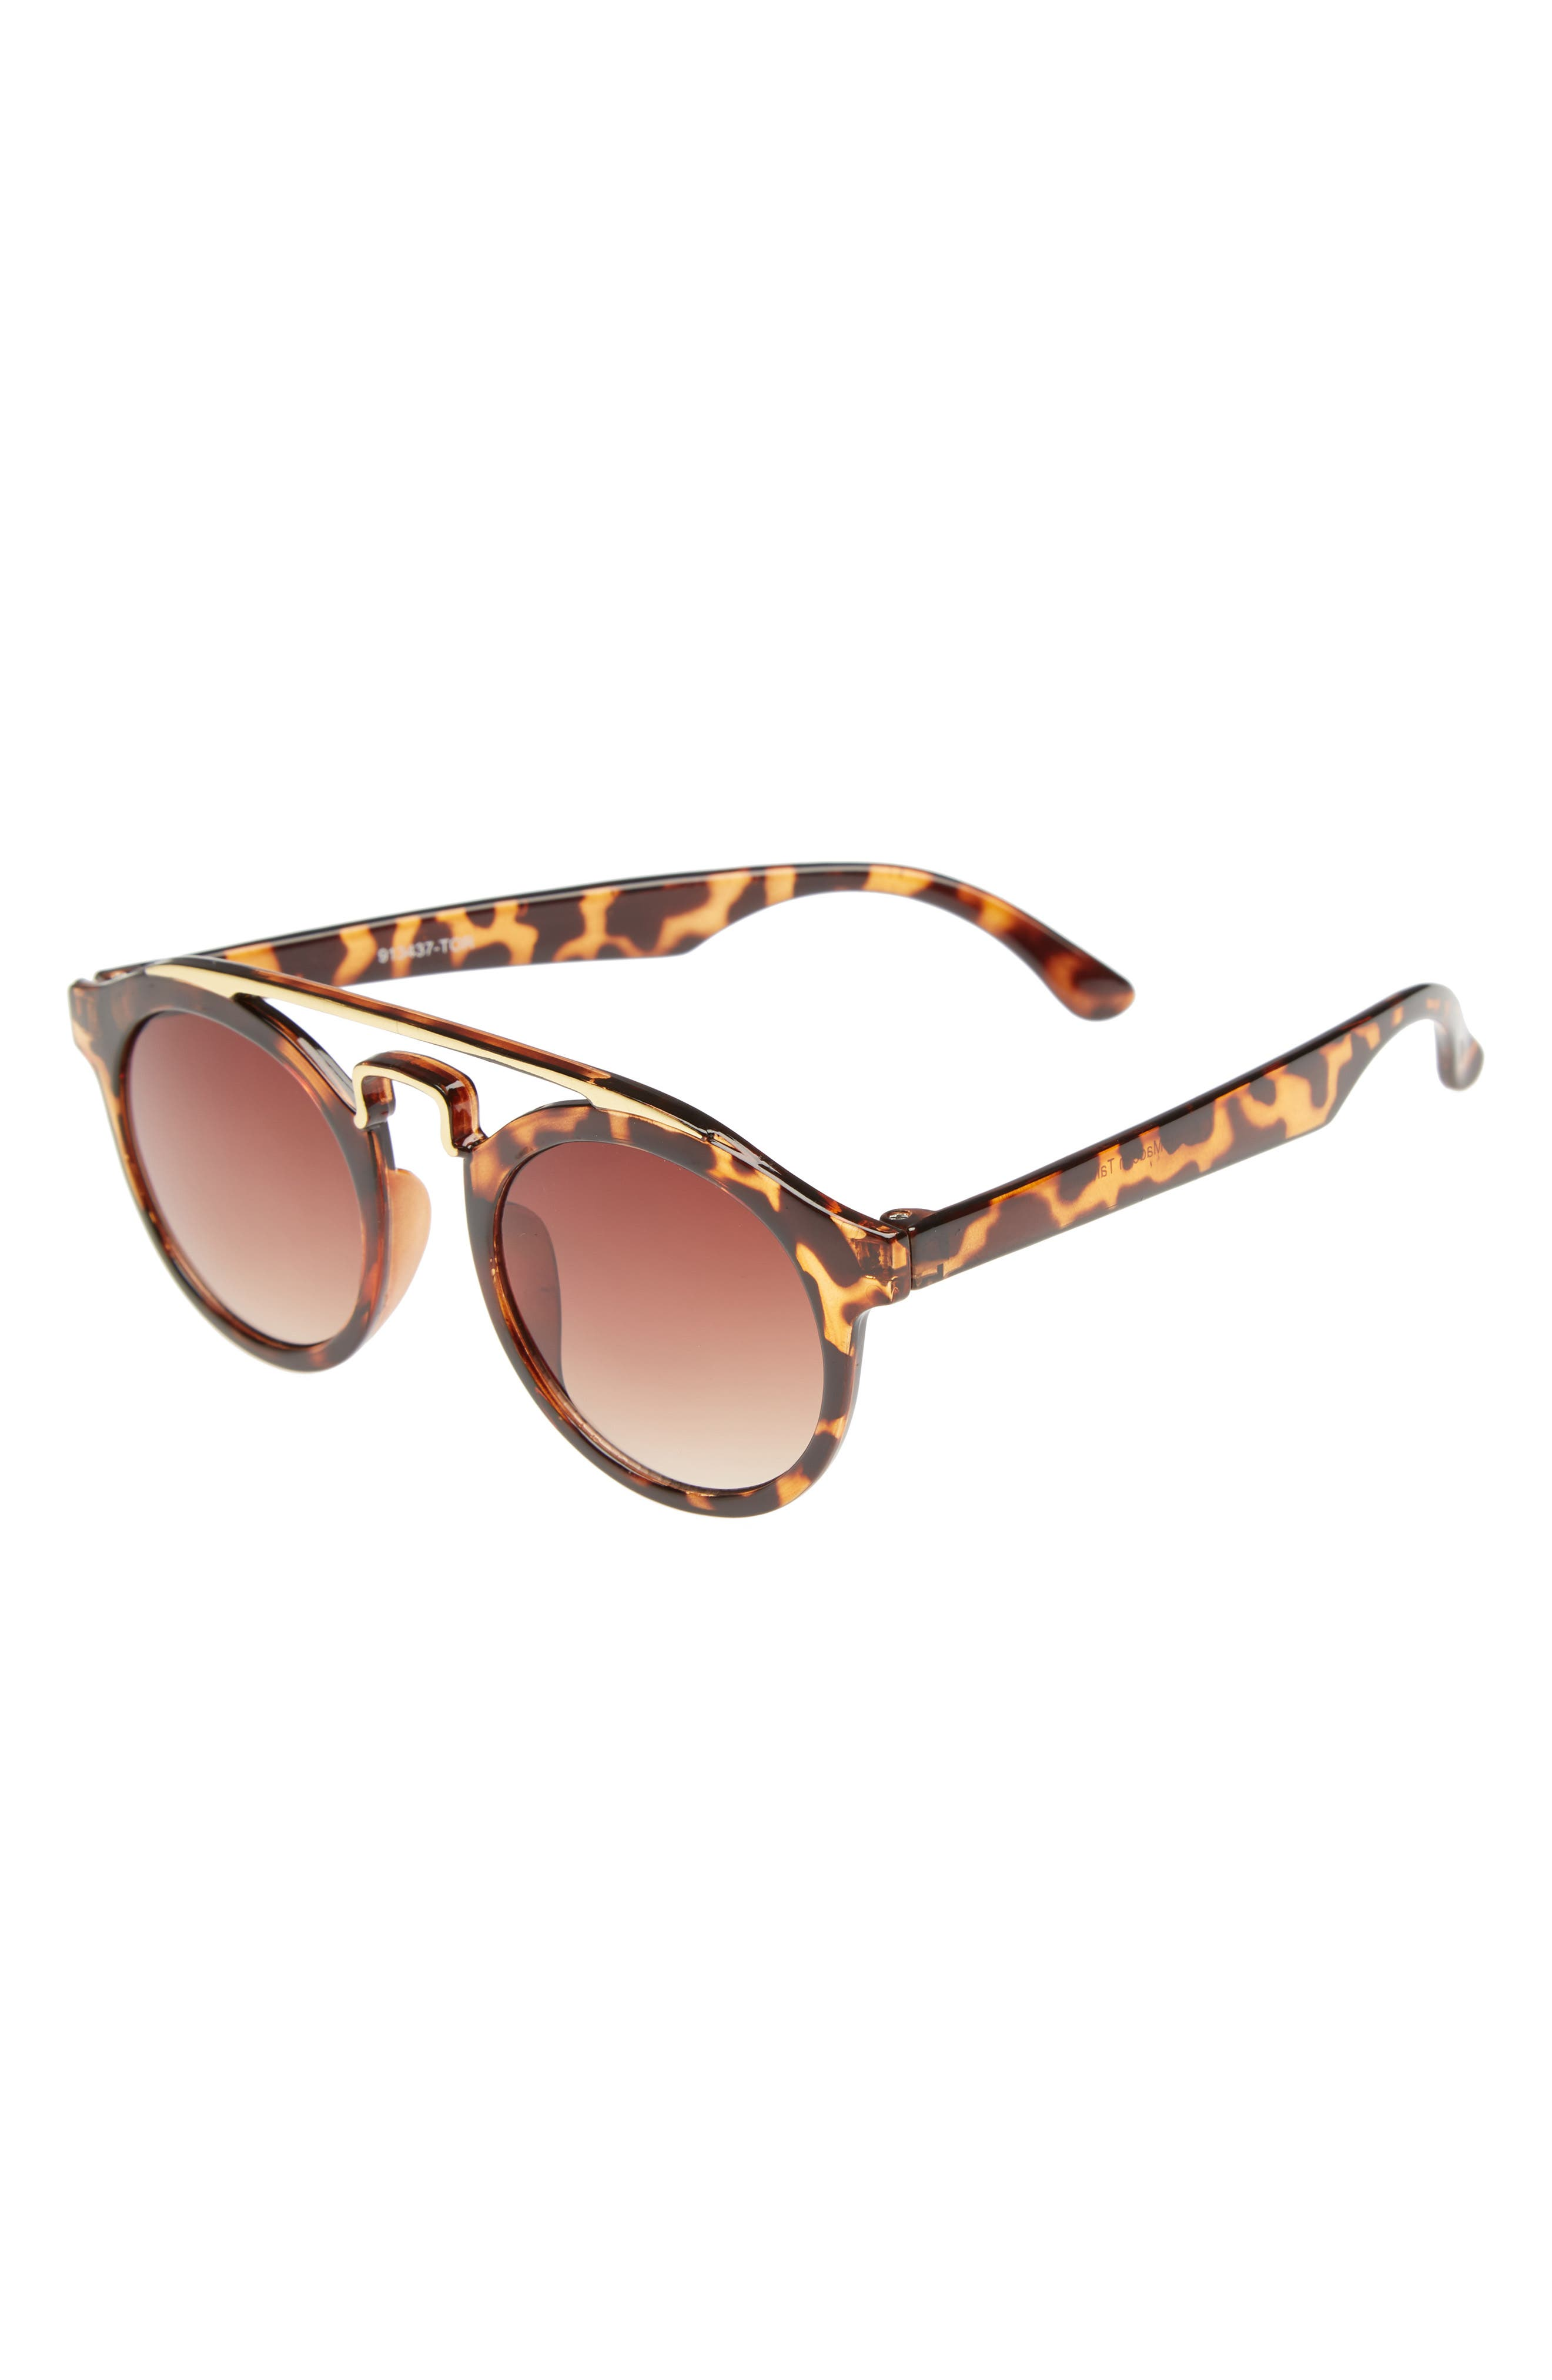 43mm Round Brow Bar Sunglasses,                         Main,                         color, Brown